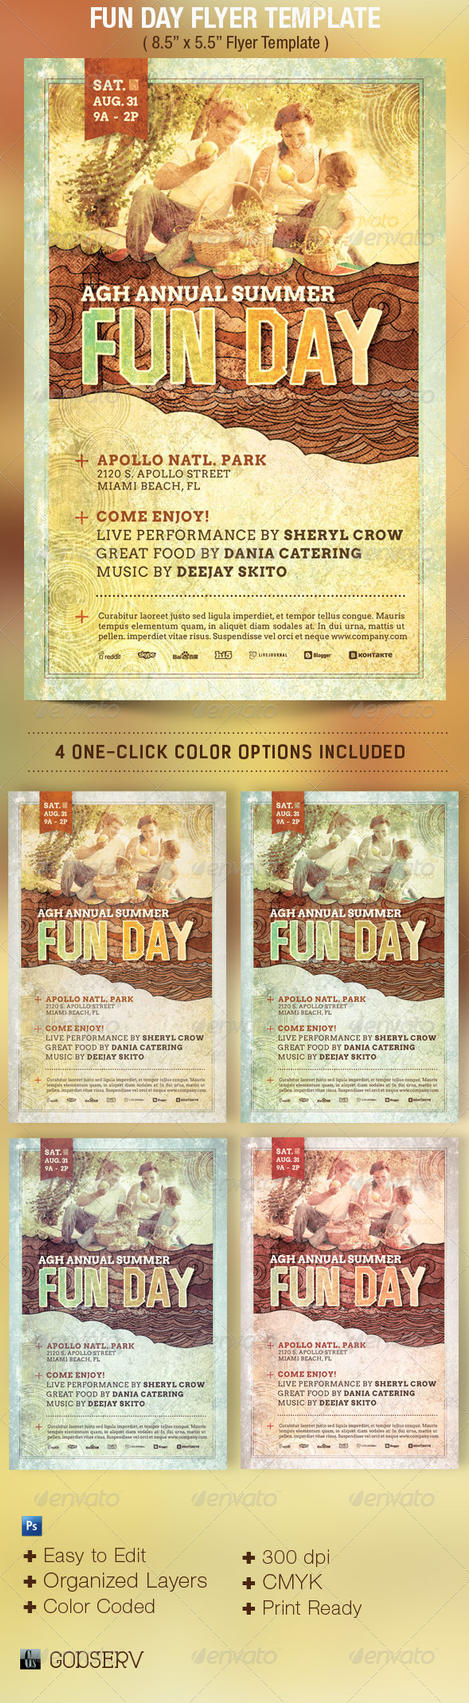 Fun day event flyer template by godserv on deviantart for Fun brochure templates